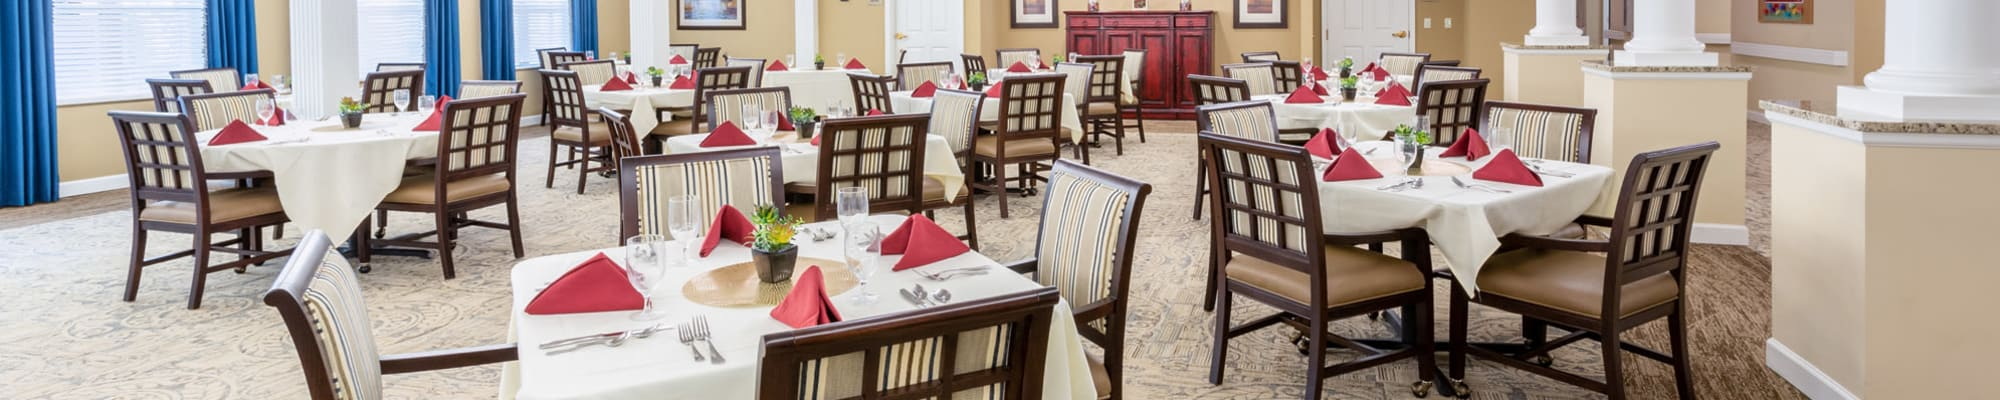 Dining at The Harmony Collection at Roanoke - Assisted Living in Roanoke, Virginia